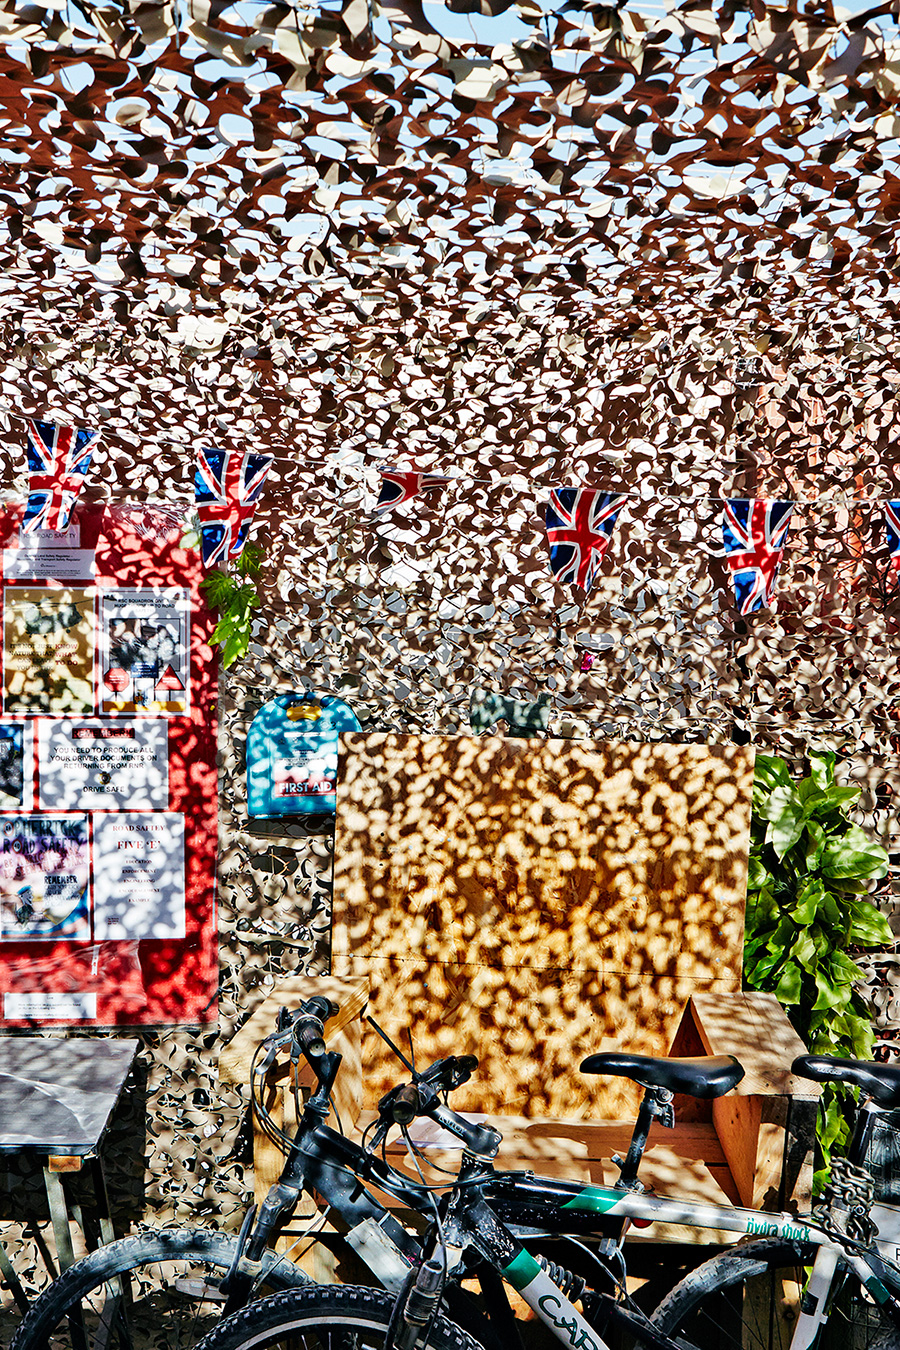 6 SHEET POSTER IN WIMBORNE   This is an image of one of the operations areas that is known as the Reverse Supply Chain,   photographed on the 29th April 2014.    This relates to the logging and packing away of equipment that is due to fly home.    Very often you find working areas covered by camouflage netting which in the harsh midday light produces an incredible mottled pattern of light and shade.